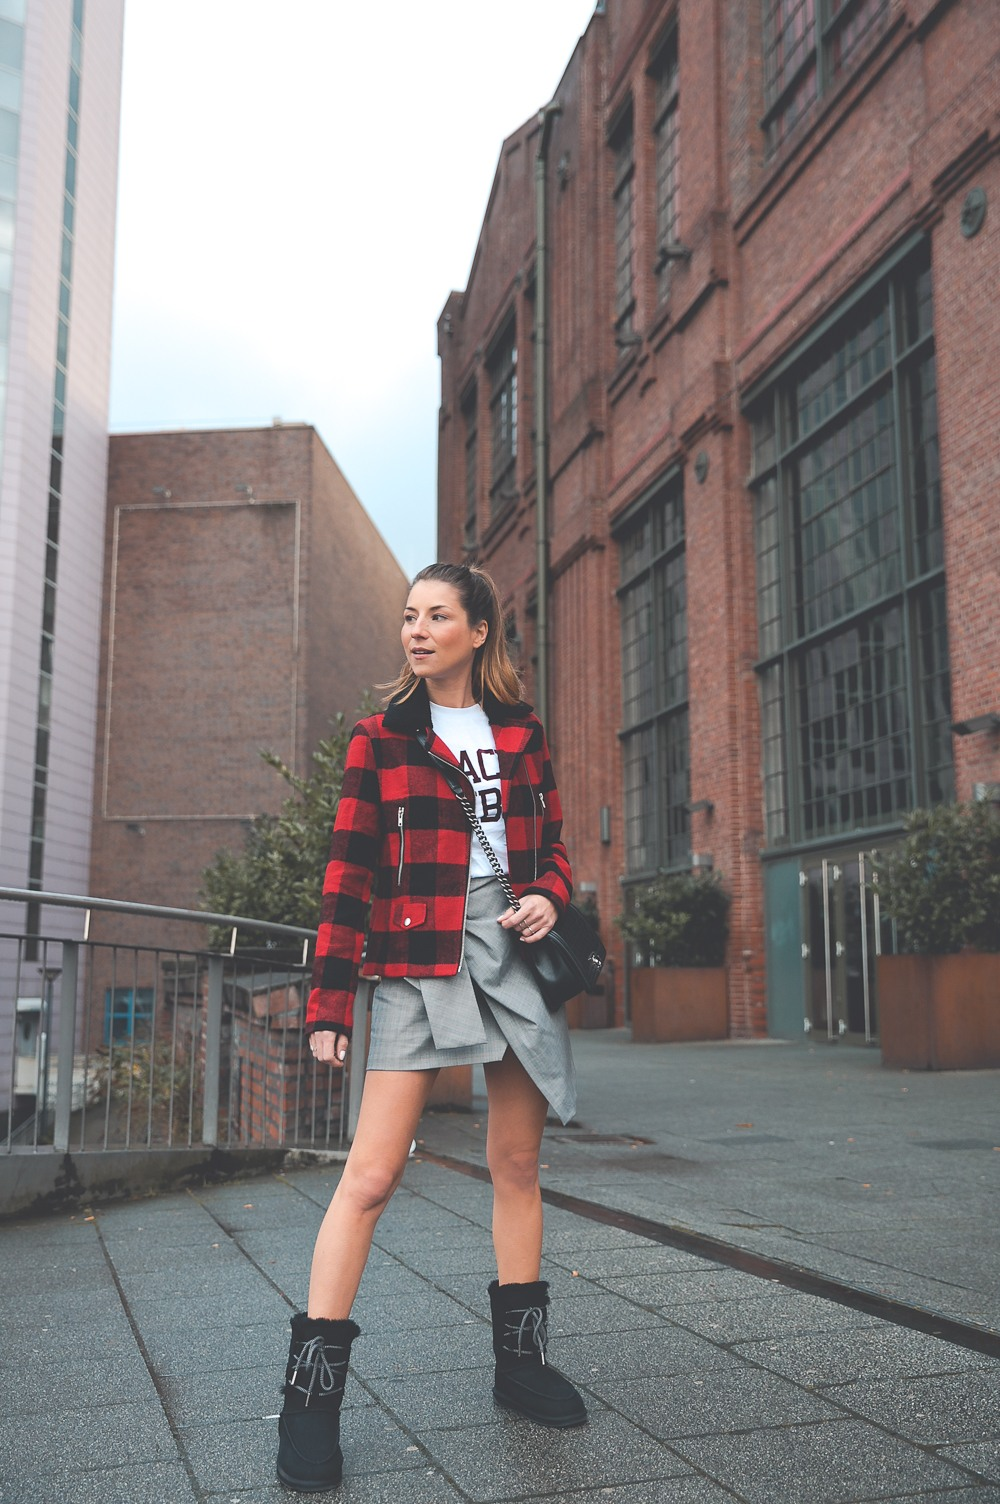 winter boots outfit skirt checked jacket casual street style winterstiefel karierte jacke